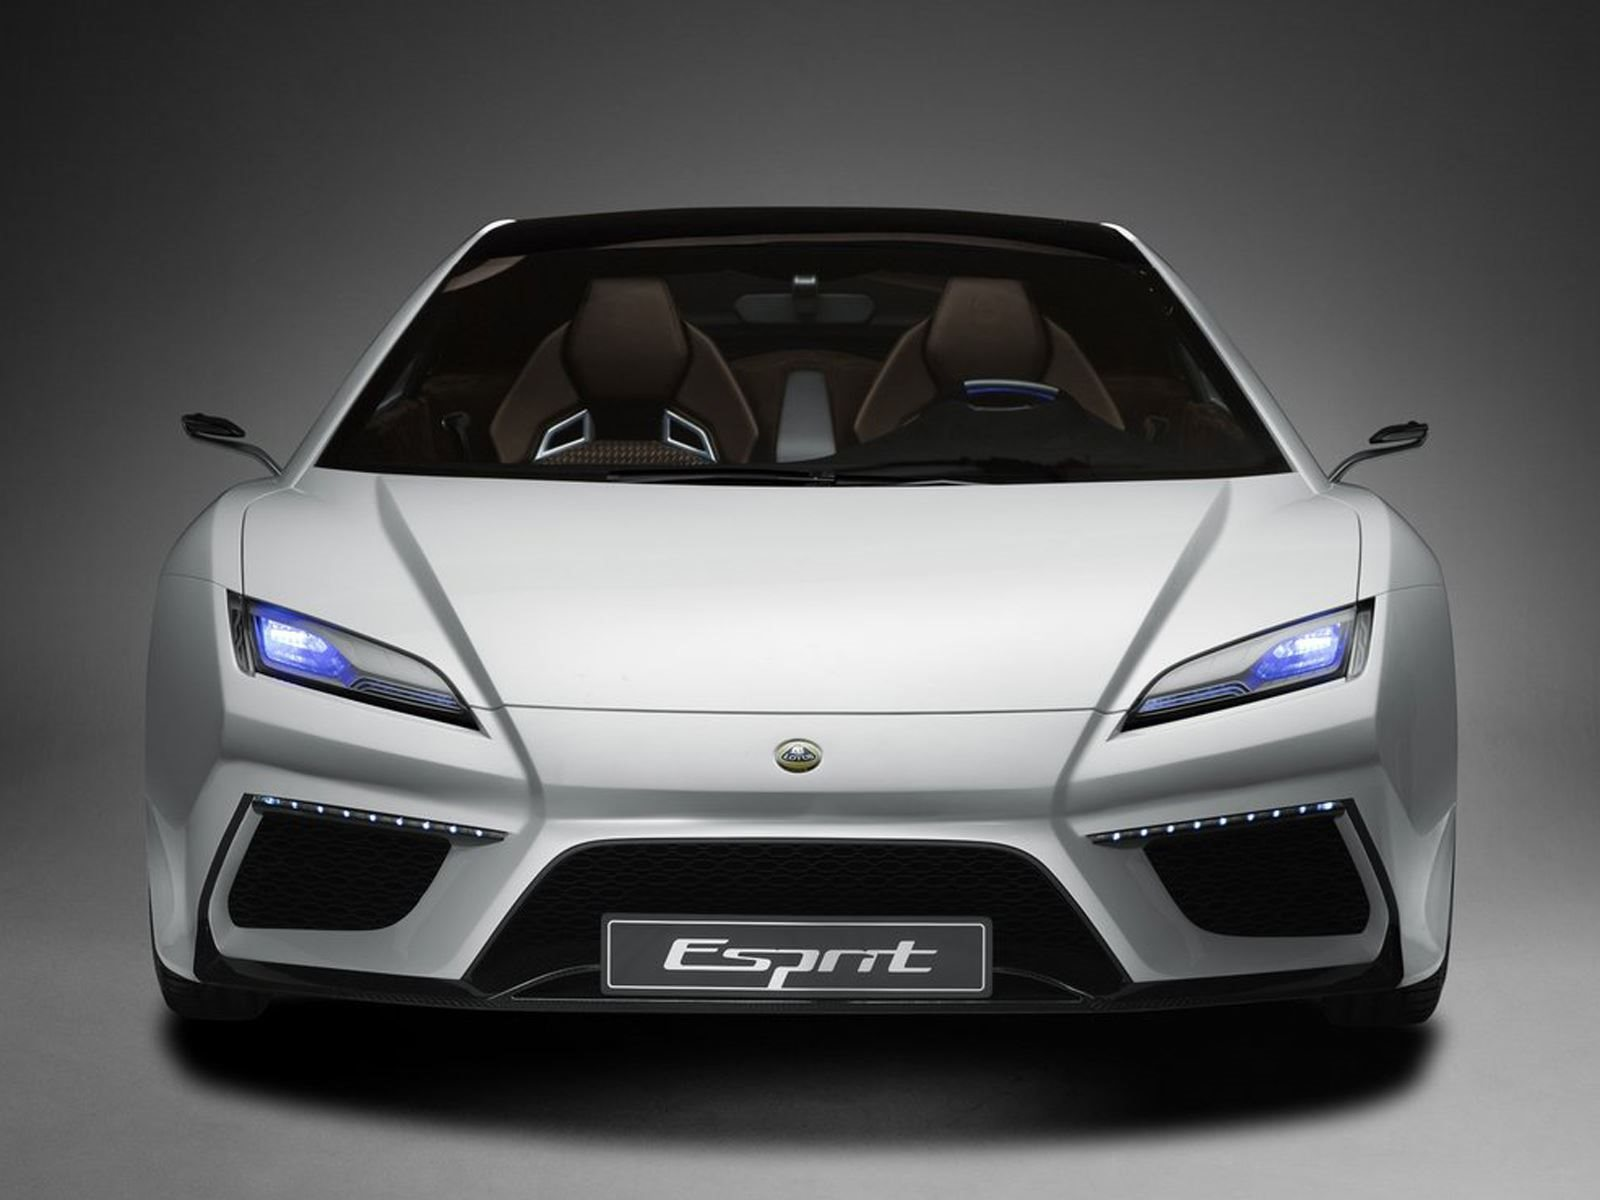 19 All New 2020 Lotus Esprit Pictures